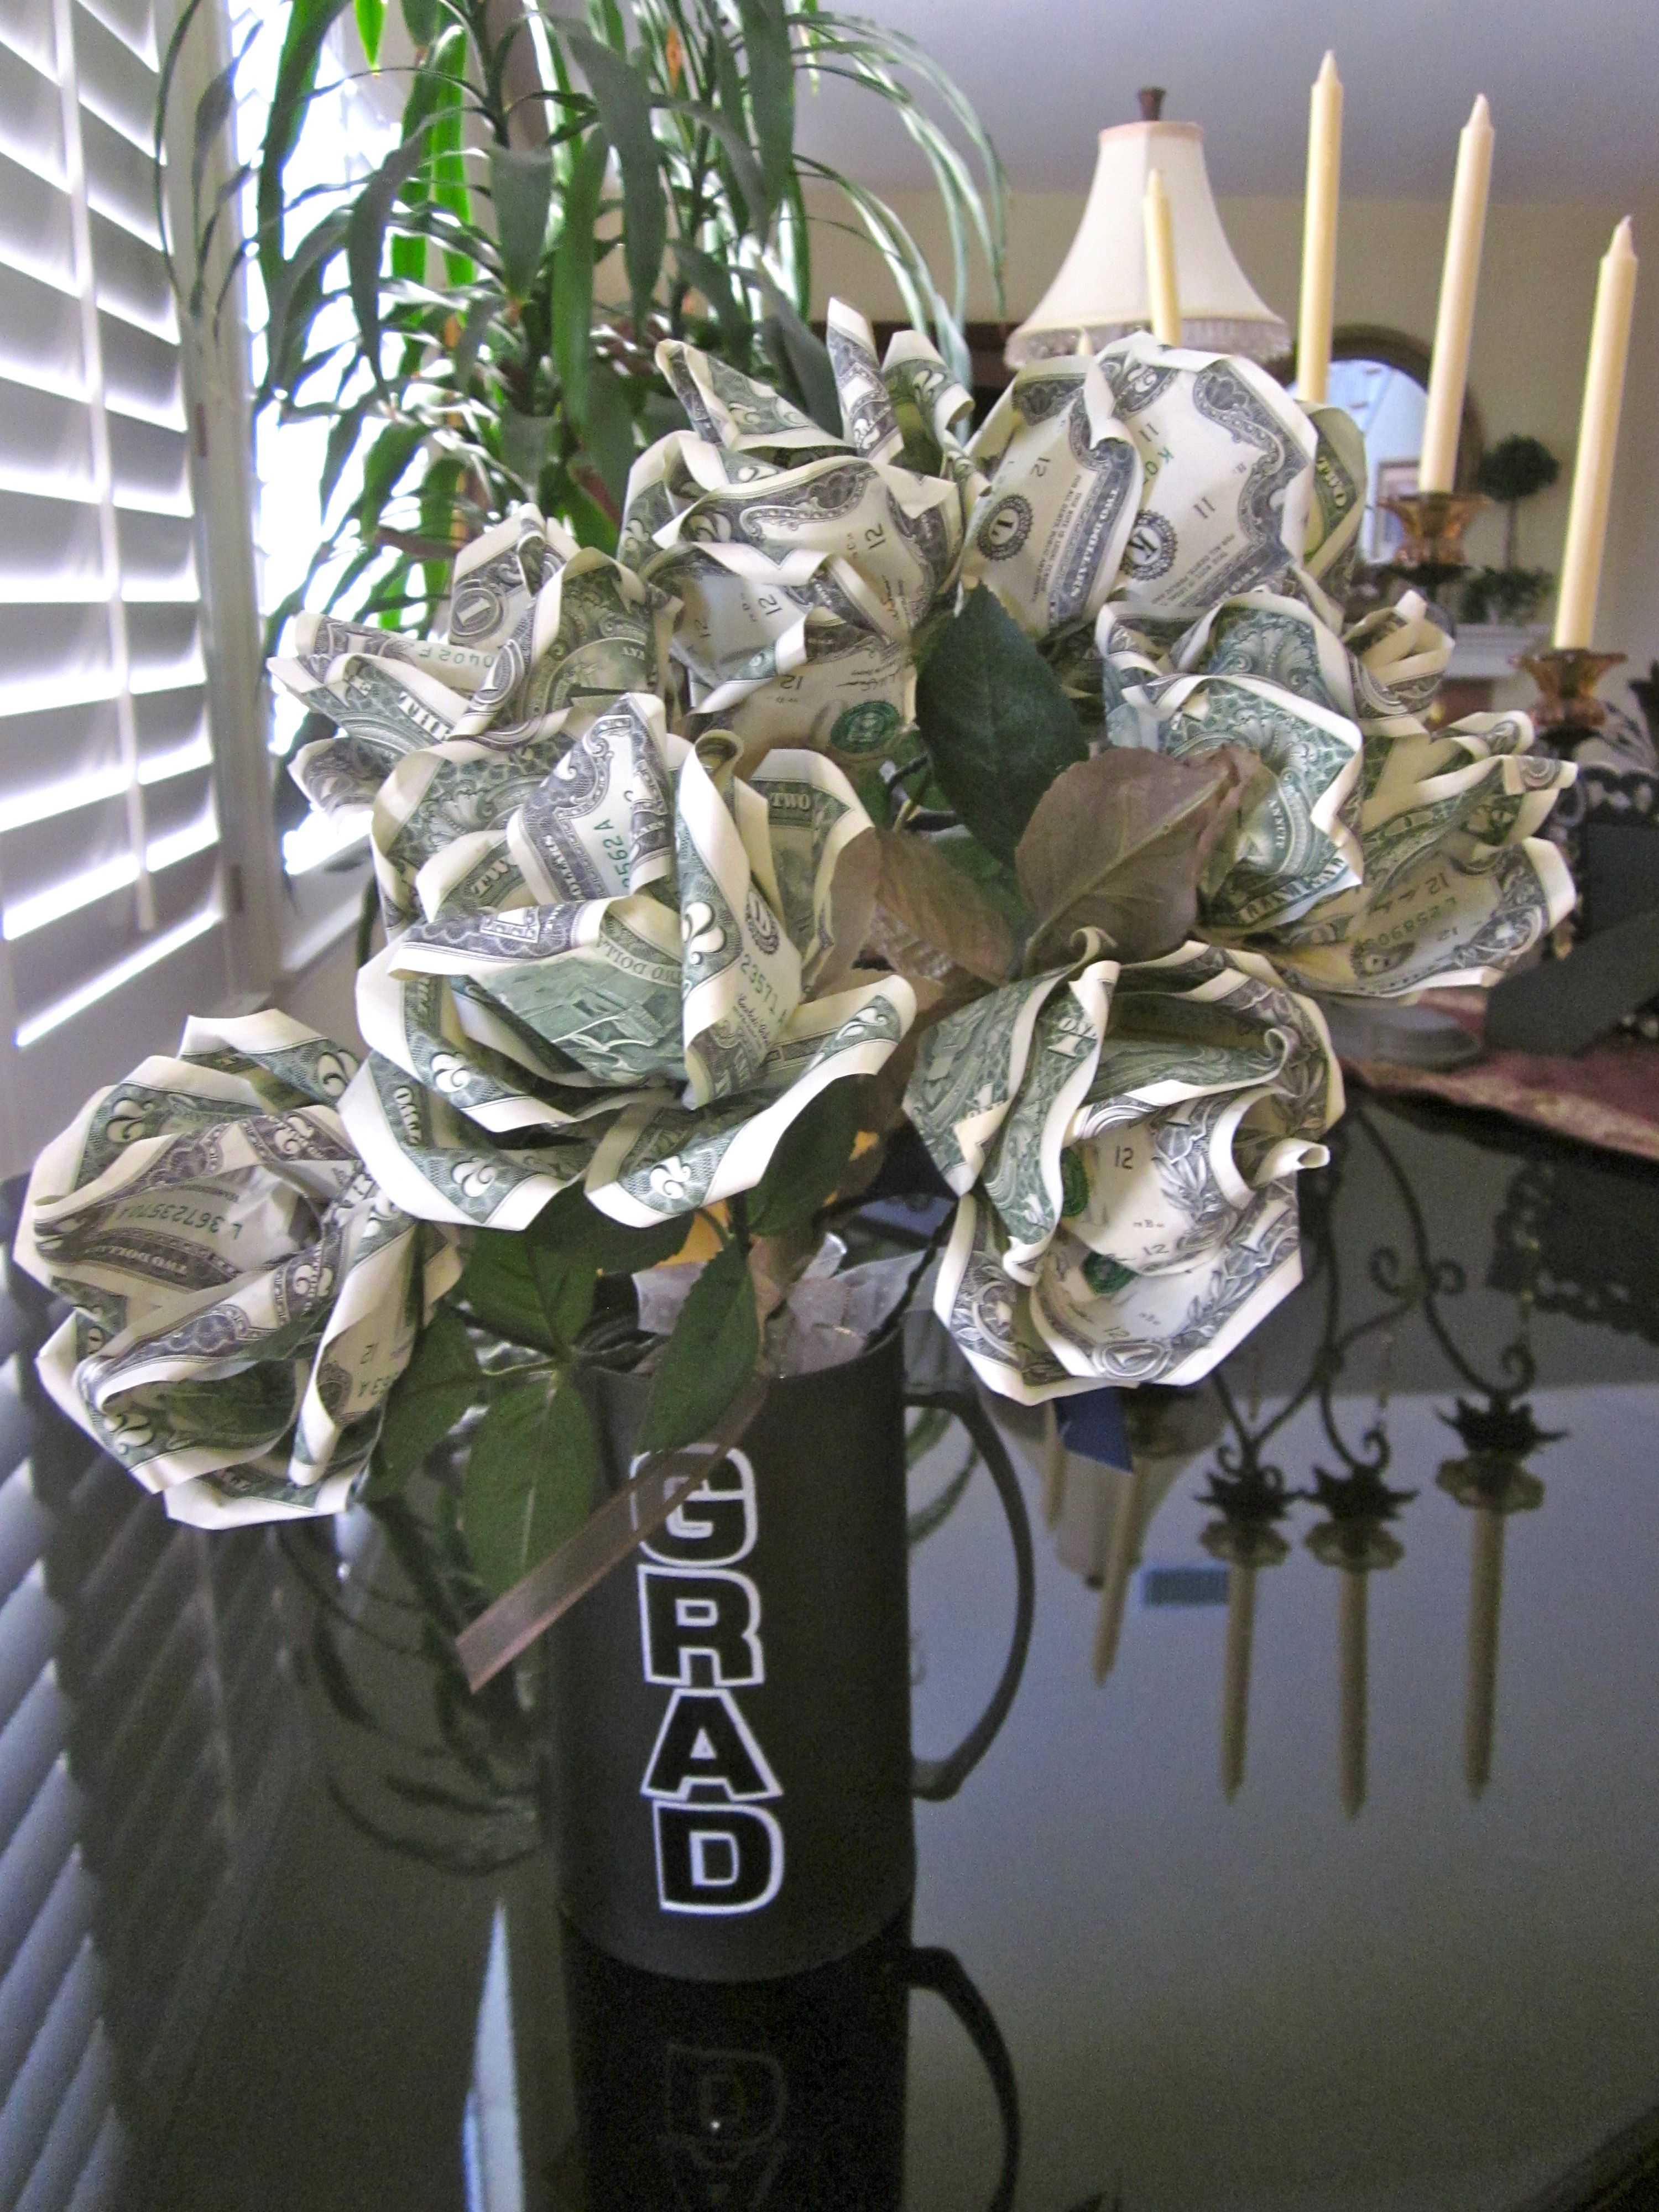 Graduation money rose bouquet things i love to make pinterest bouquet of money roses by pcbymarilyn on etsy dhlflorist Choice Image